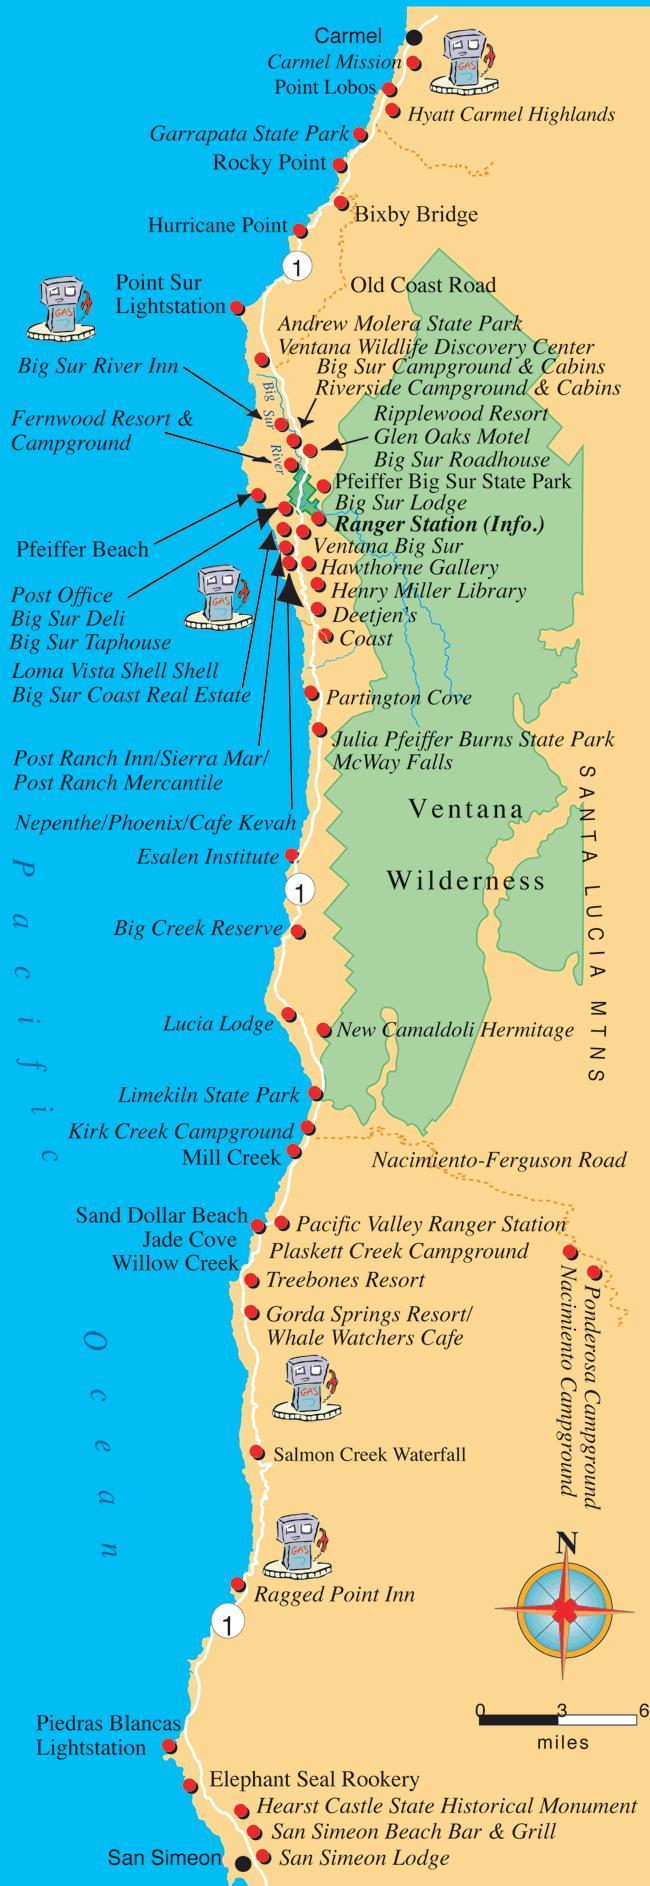 Map Of Big Sur Maps, Directions, and Transportation to Big Sur California